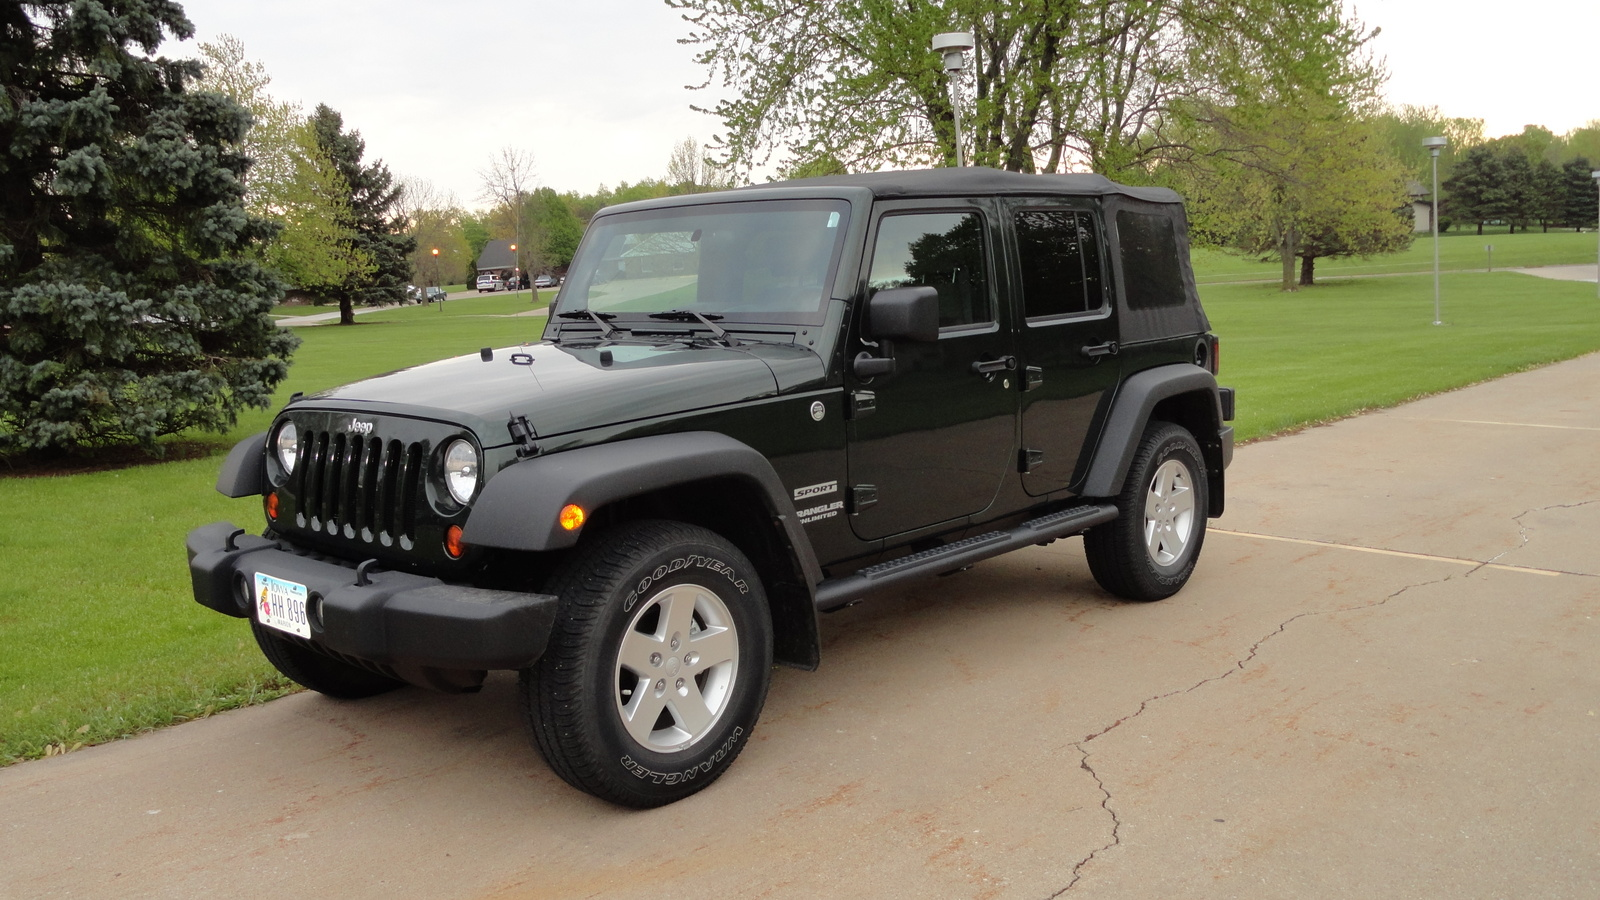 2010 Jeep Wrangler - Pictures